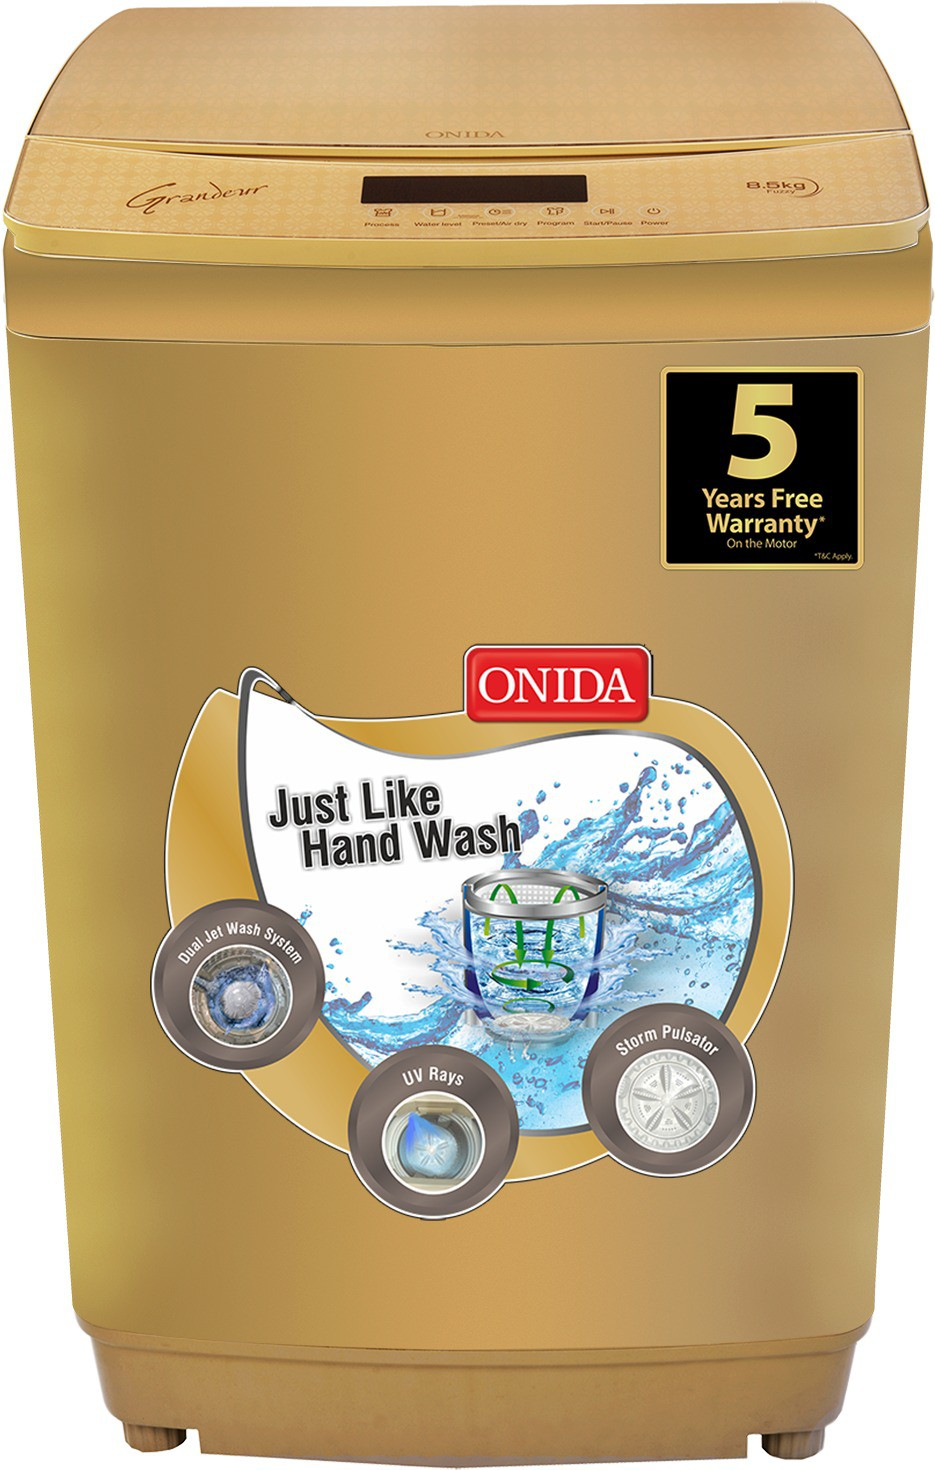 Onida 8.5 kg Fully Automatic Top Load Washing Machine Gold(T85GRDD) Image